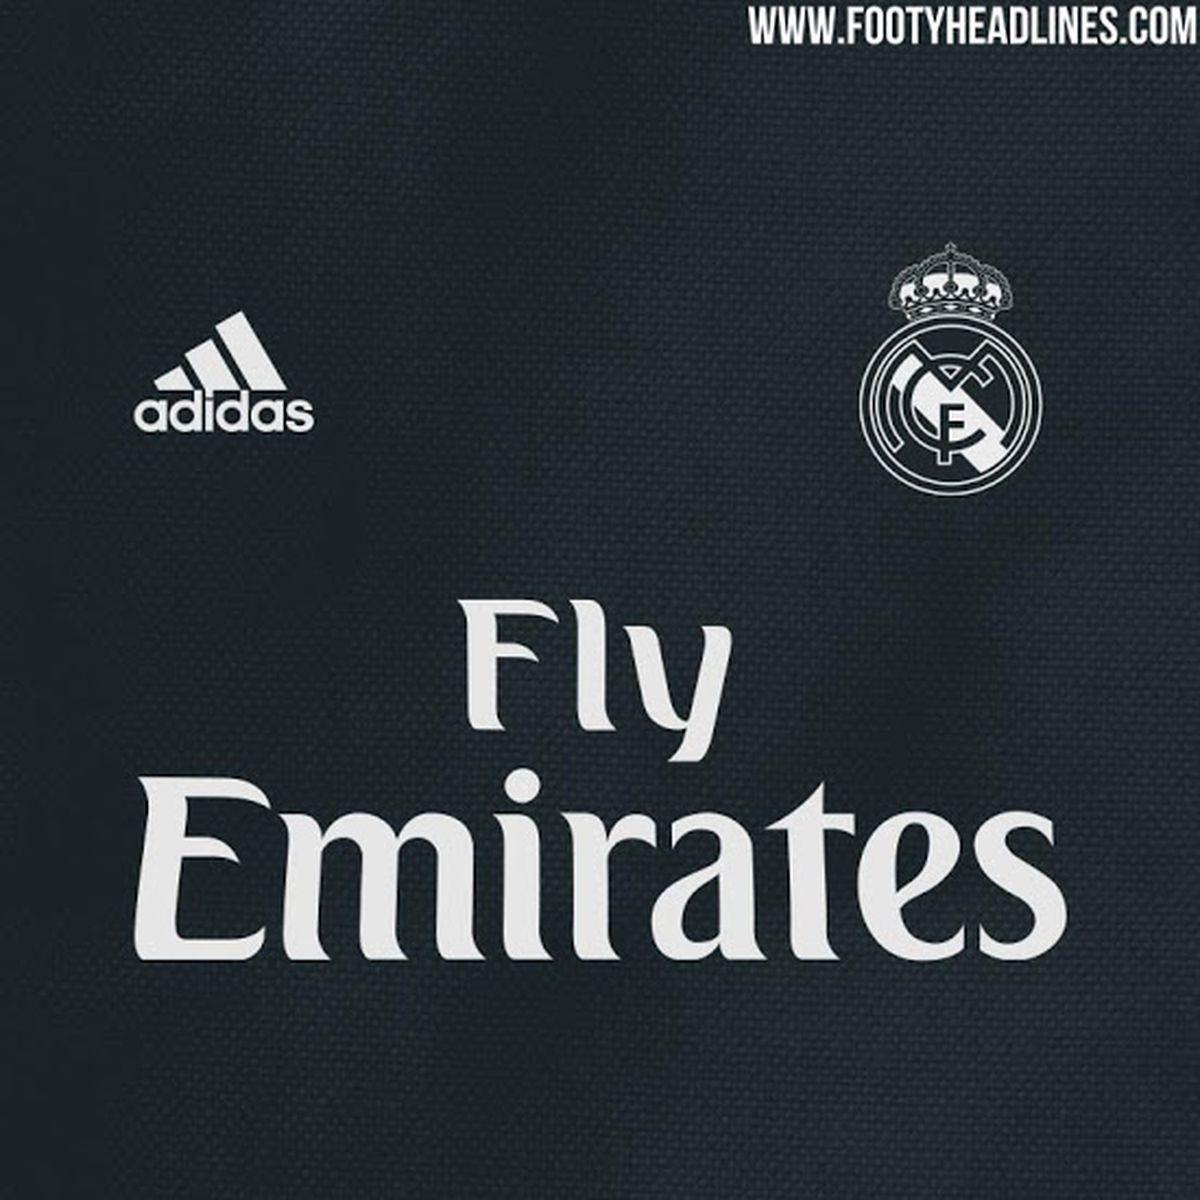 info for b7d2b b9fef Real Madrid 2018/2019 Wallpapers - Wallpaper Cave